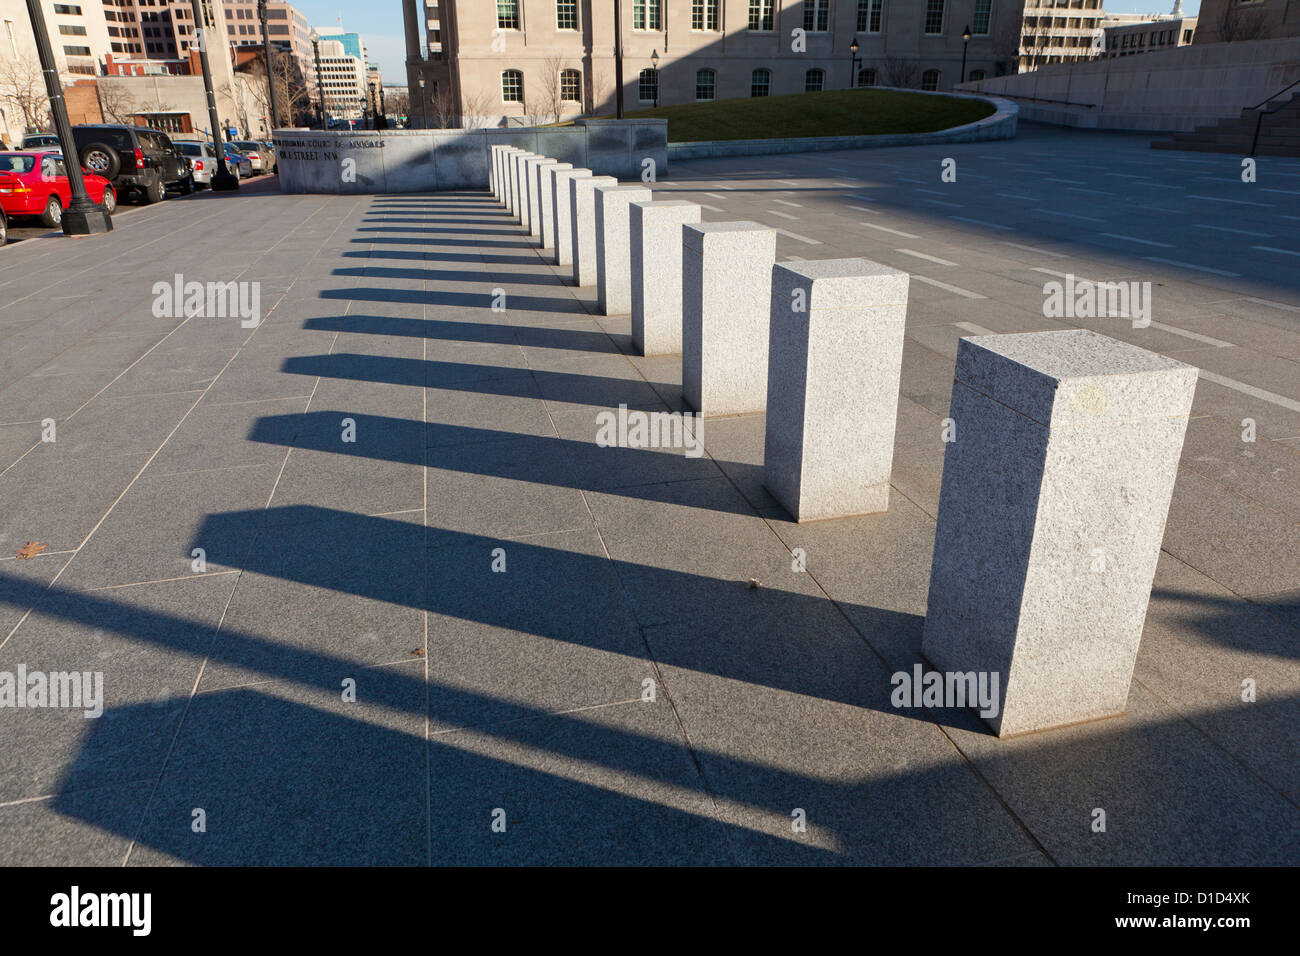 Protective bollards in front of US government building (stone safety barrier posts) - Washington, DC USA - Stock Image